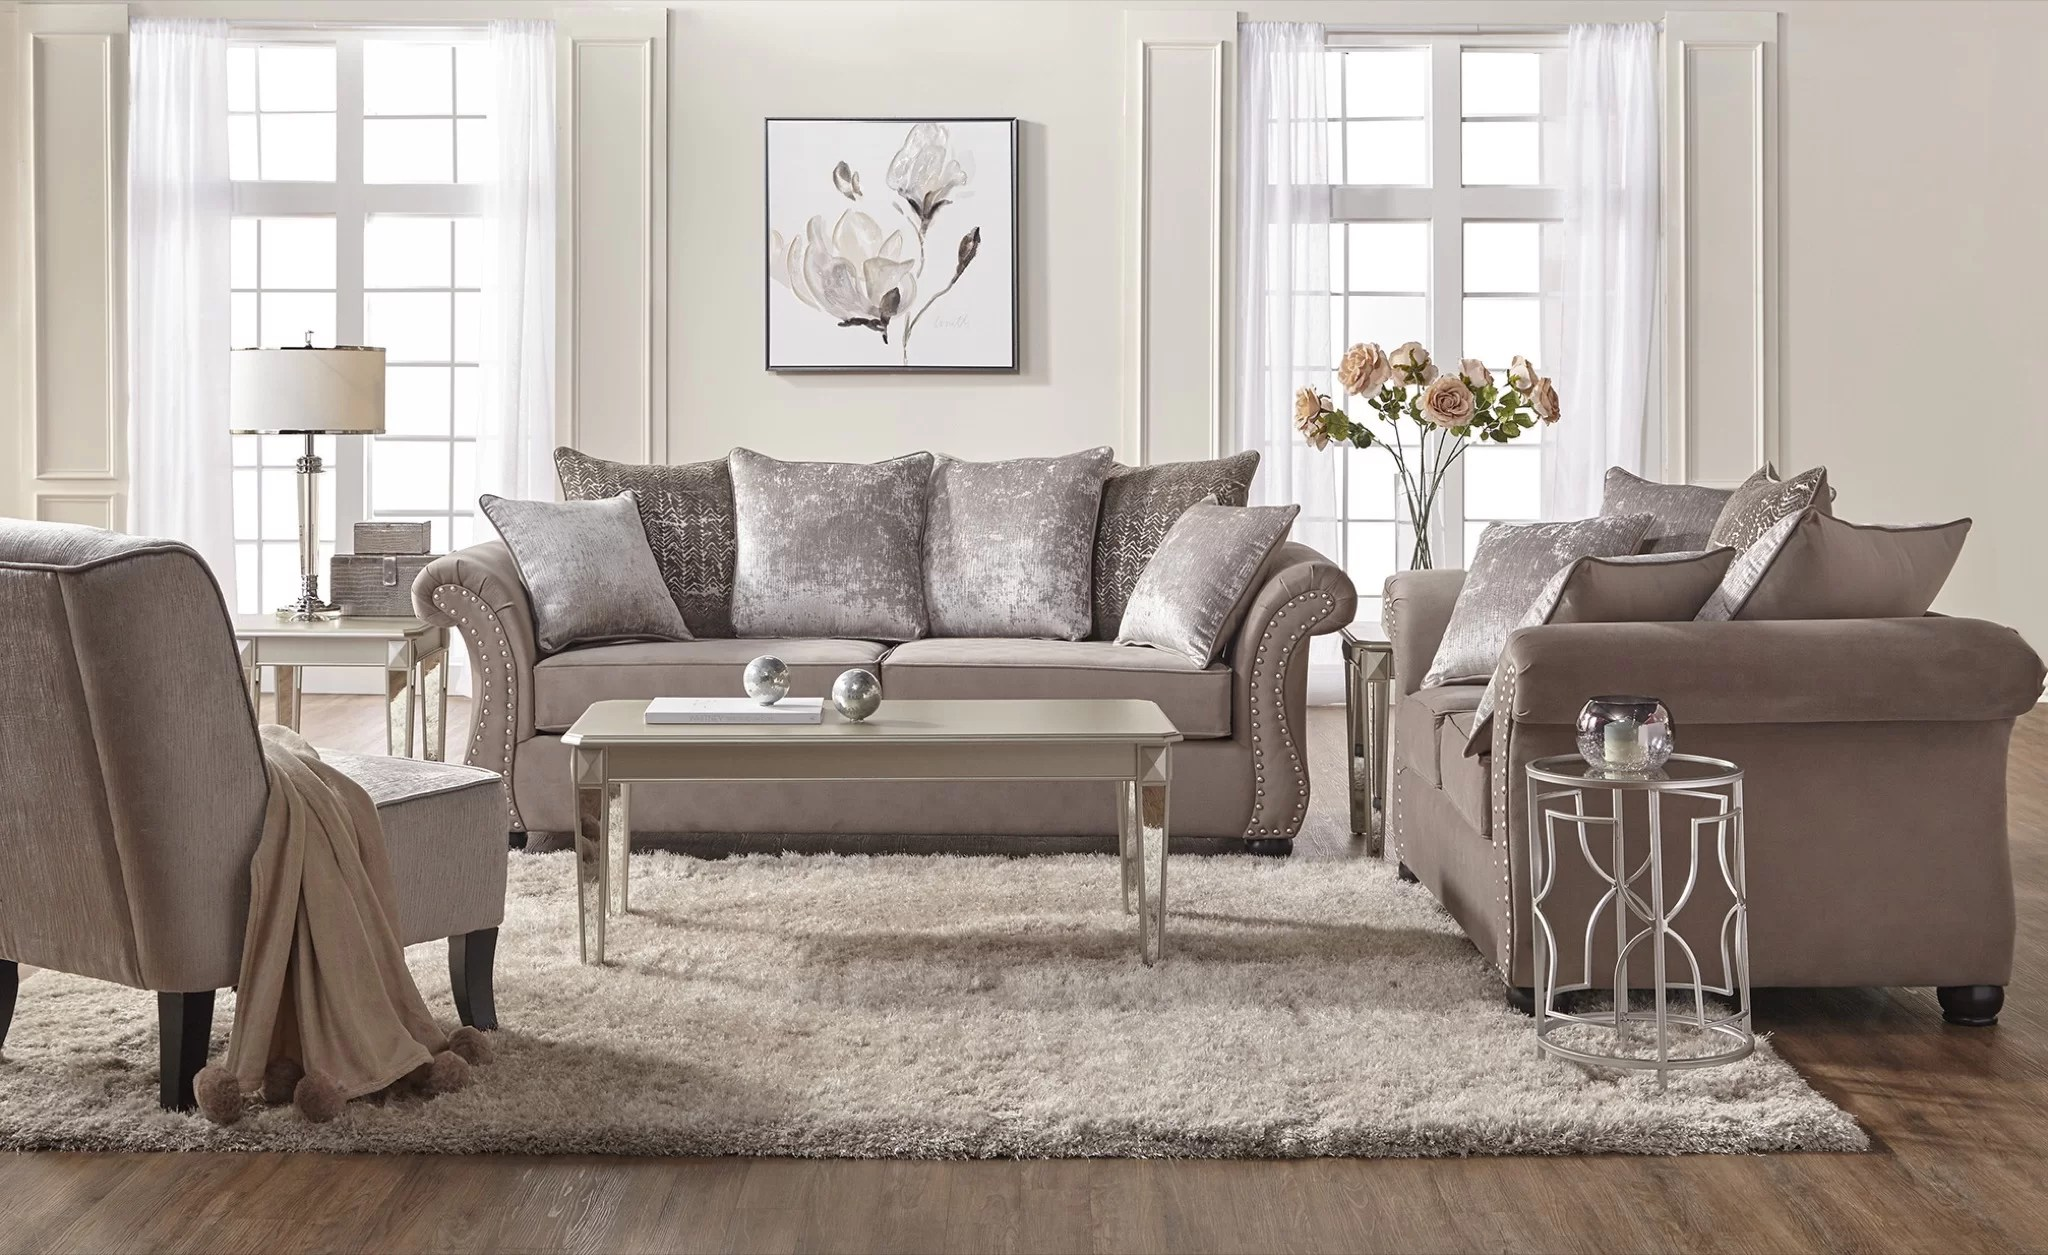 Contemporary Living Set Bedingfield Contemporary 2 Piece Living Room Set